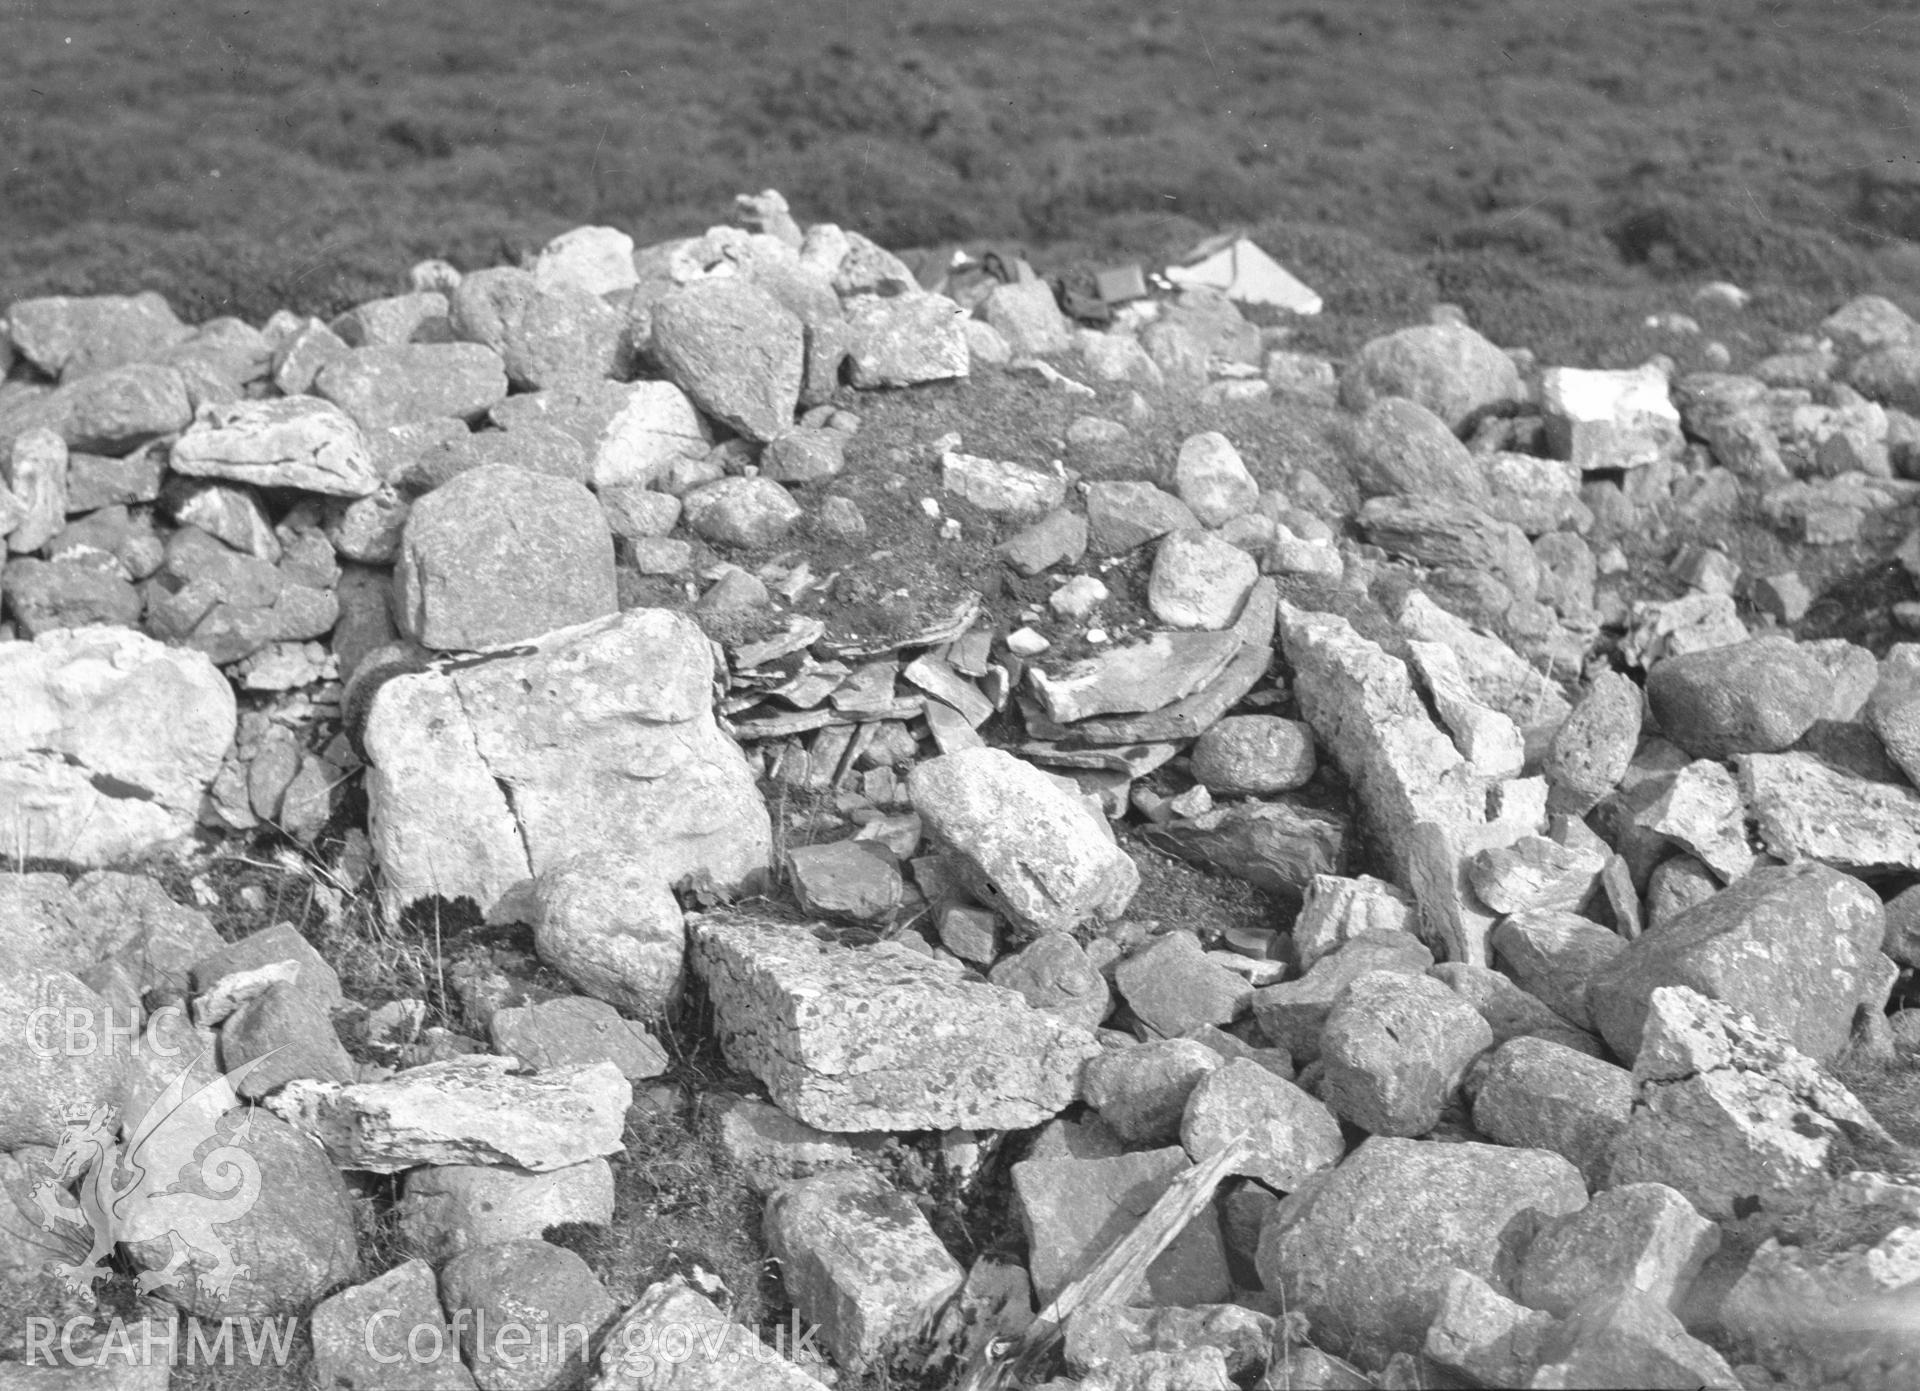 Digital copy of a nitrate negative showing Creigiau Eglwyseg Cairn